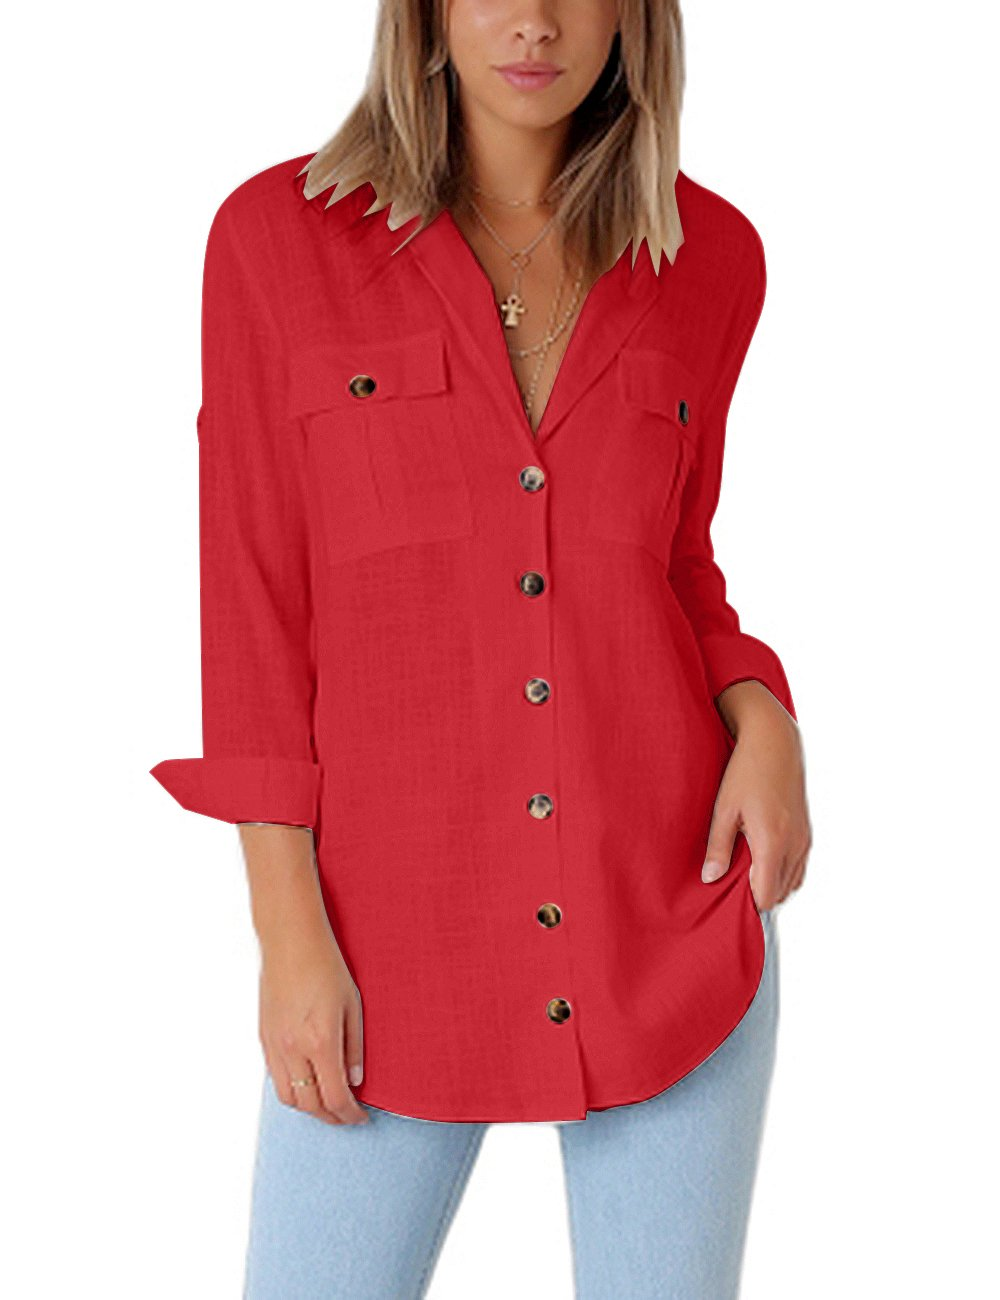 GRAPENT Womens Casual Loose Roll-up Sleeve Blouse Pocket Button Down Shirts Tops GP-BLBEAOHD